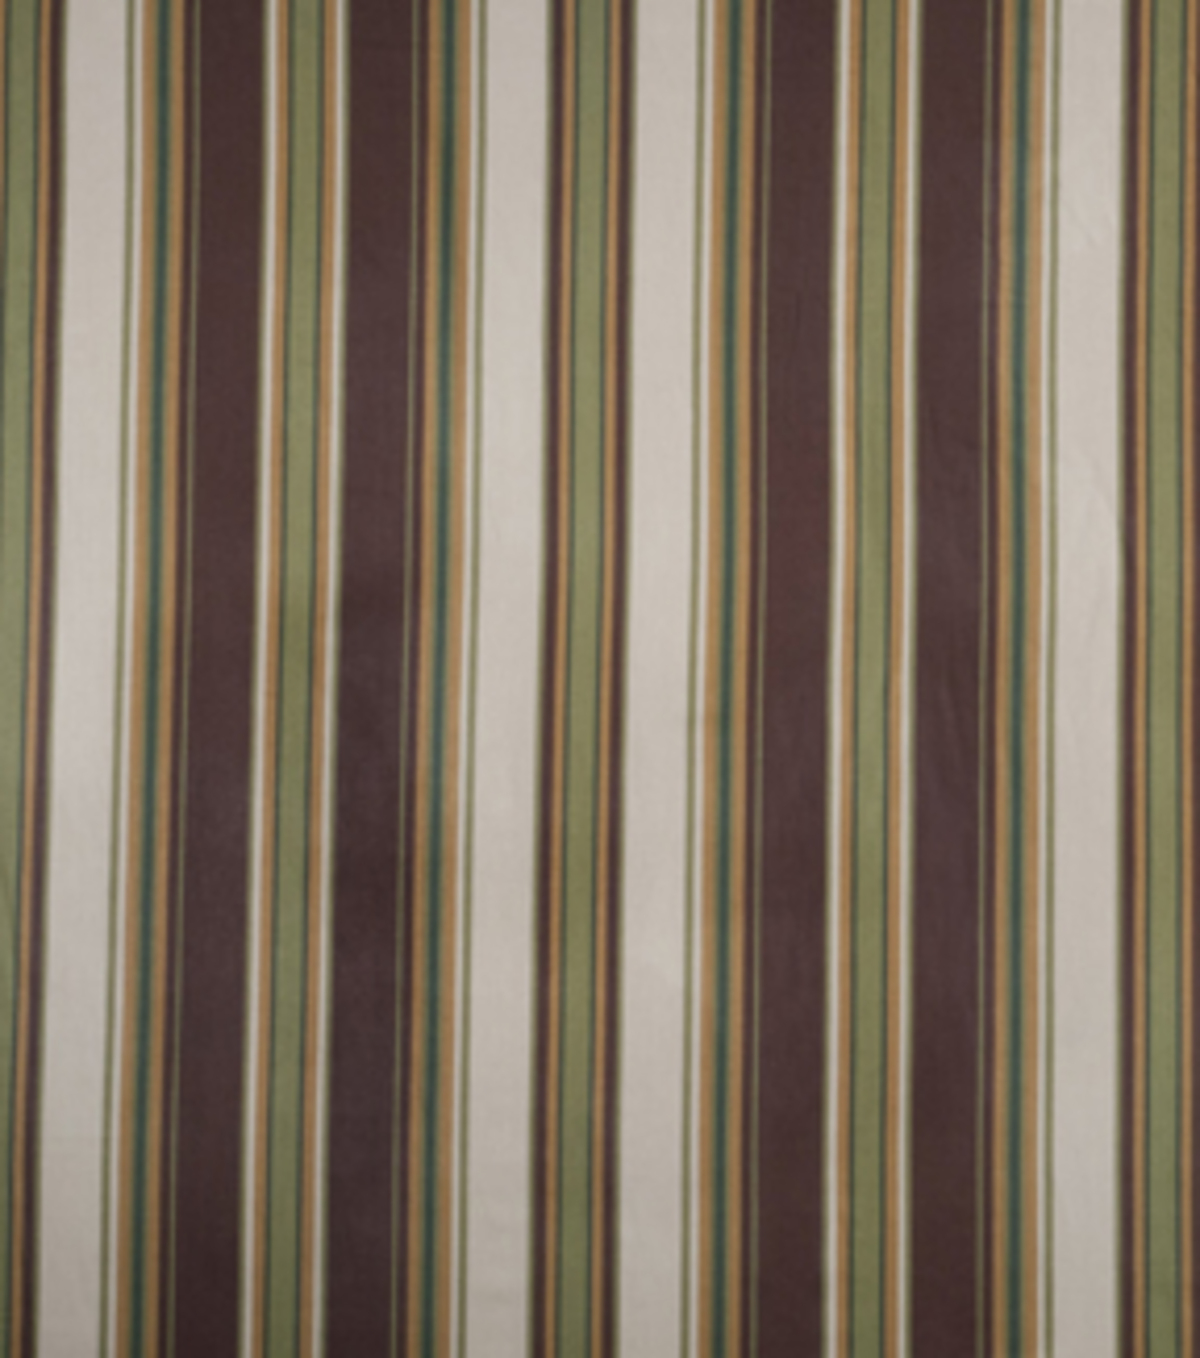 Home Decor 8\u0022x8\u0022 Fabric Swatch-Upholstery Fabric SMC Designs Frost Walnut